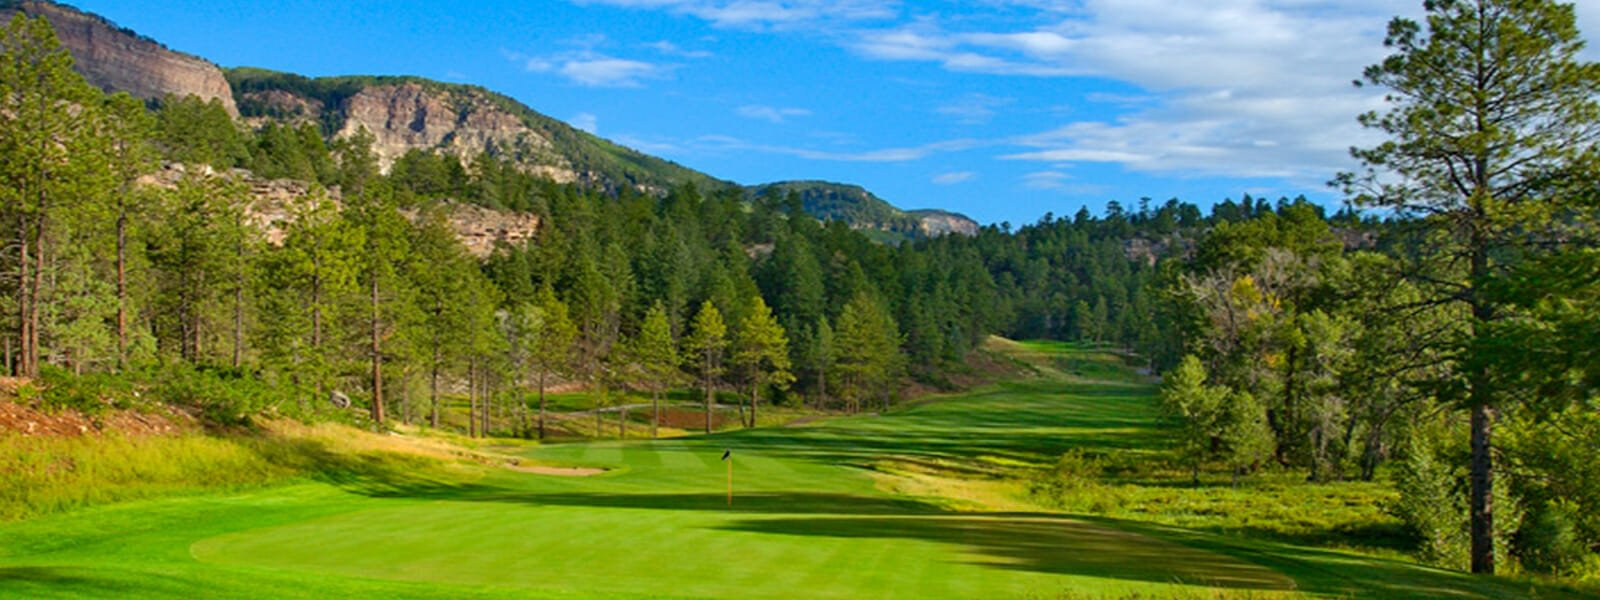 Mountain Golf Club Community in Durango Colorado | Glacier Club